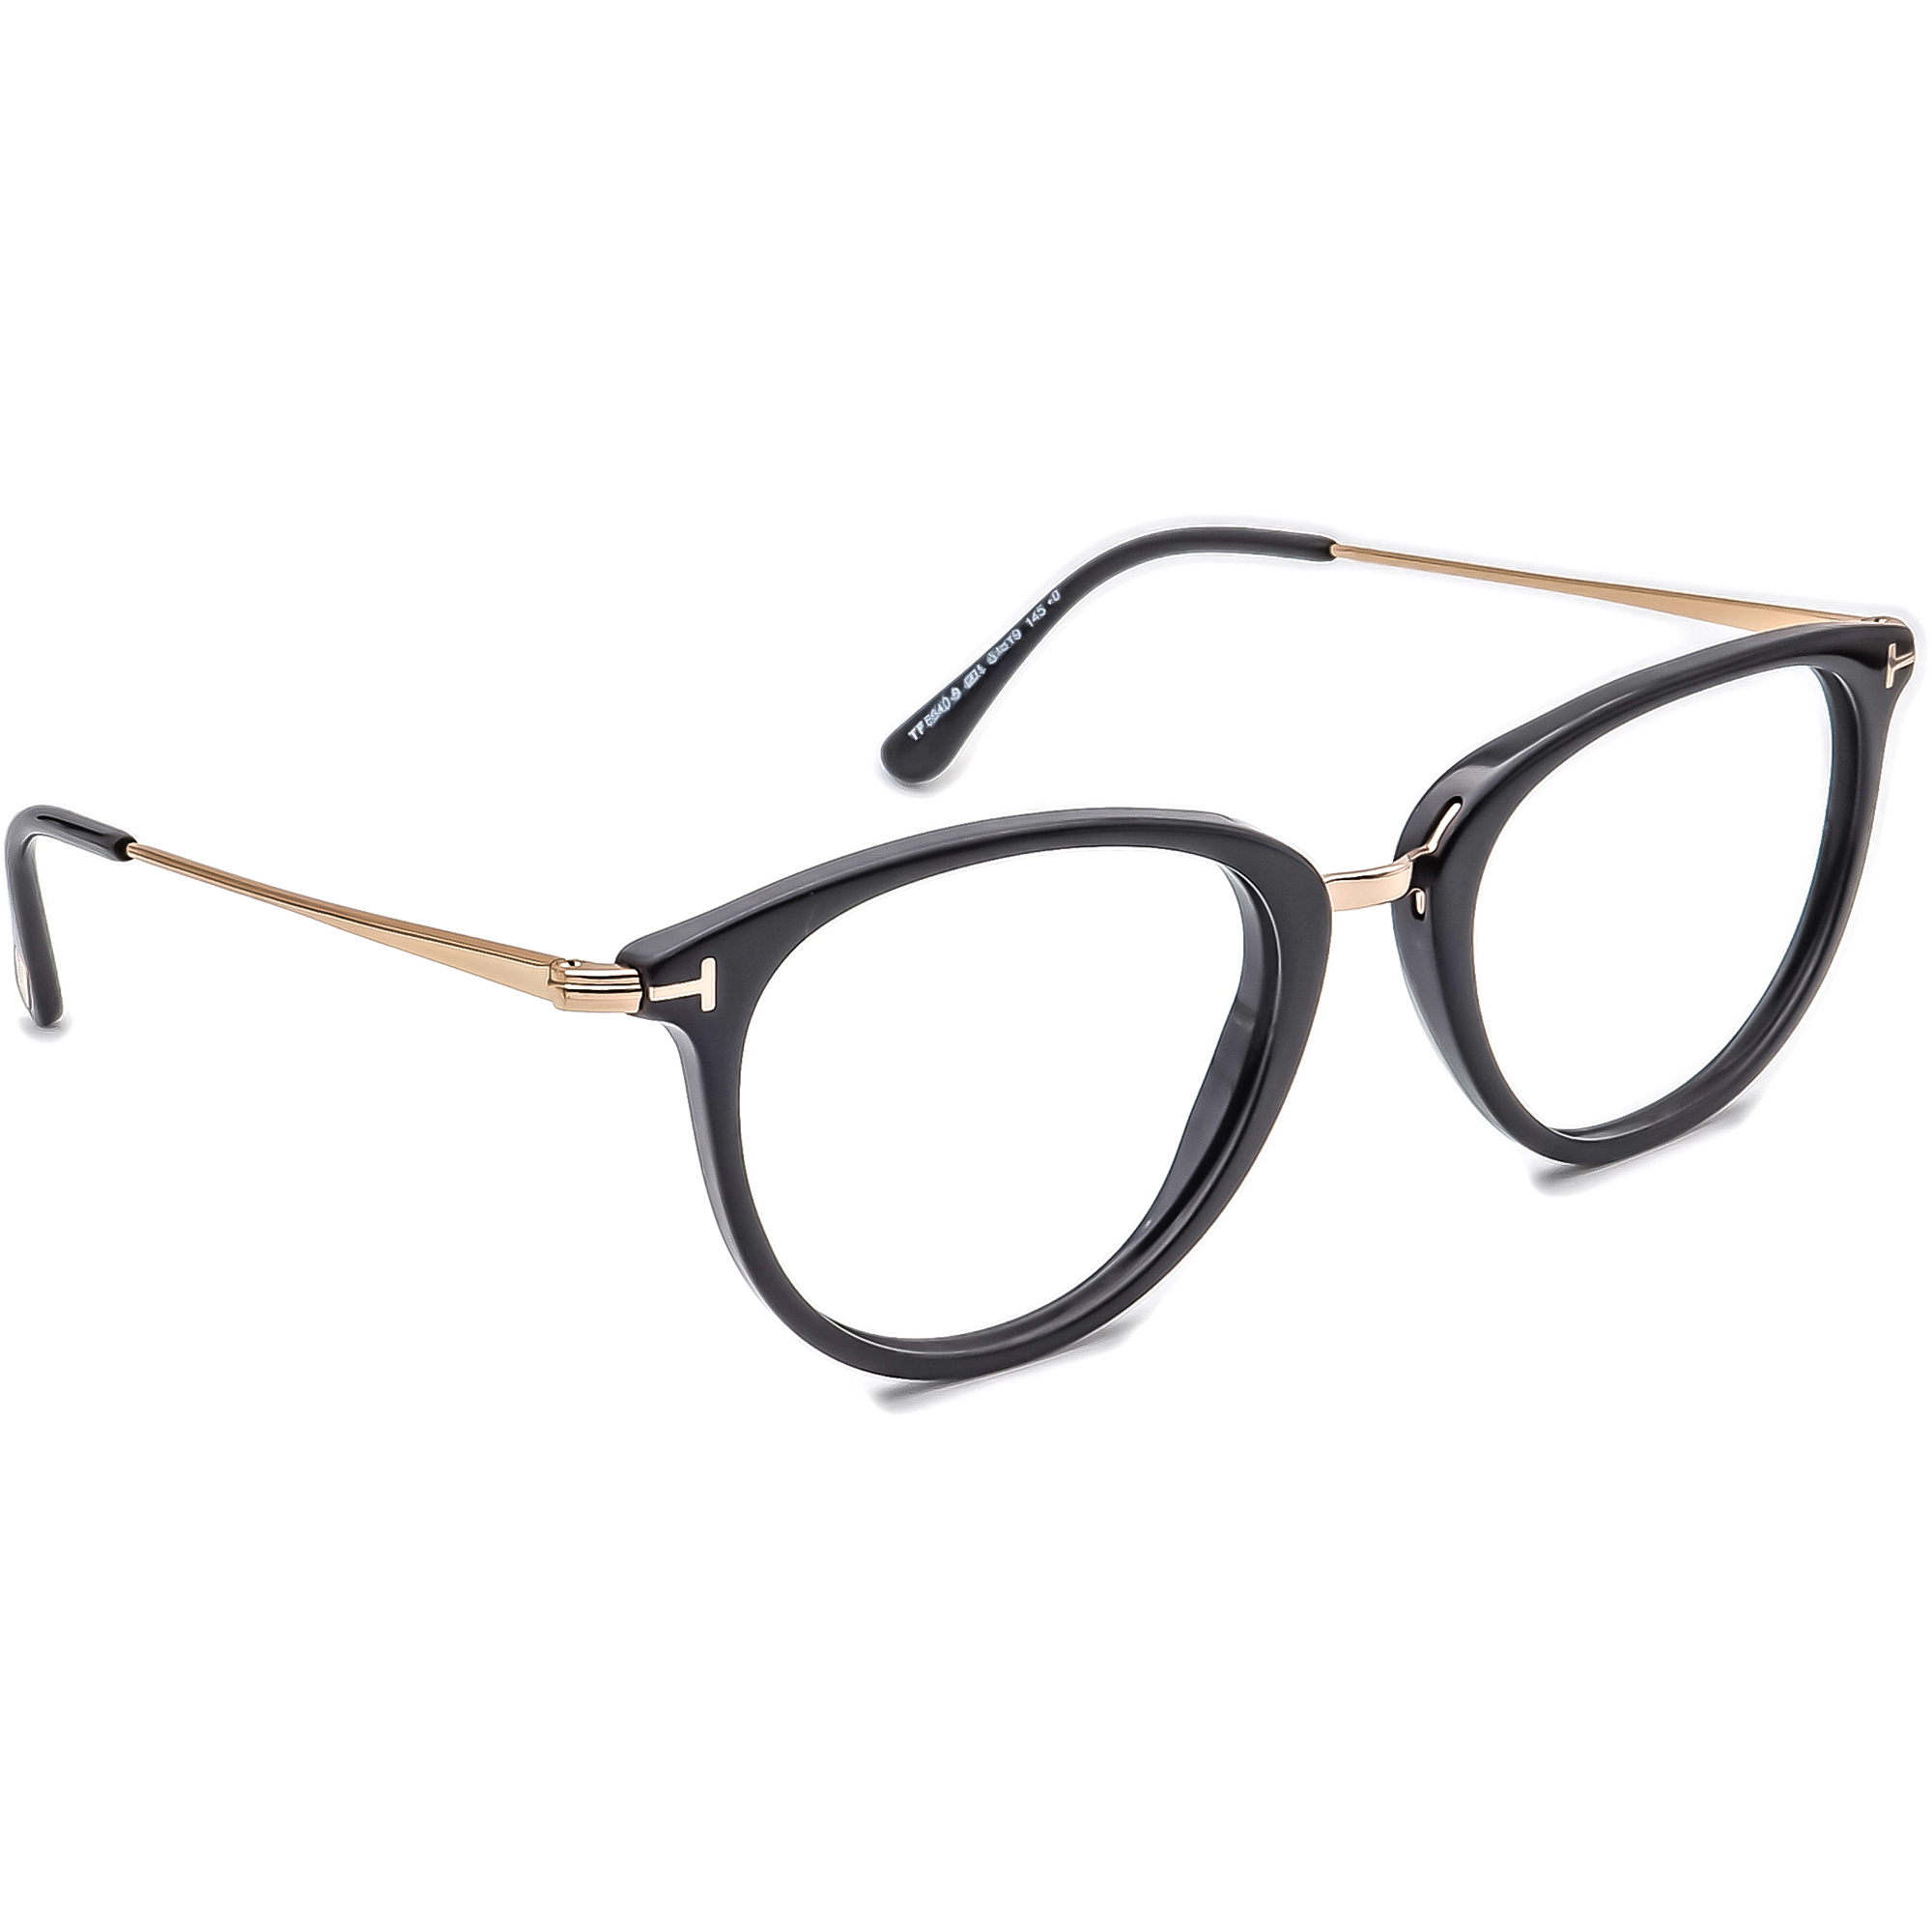 Tom Ford TF5640-B 001 Eyeglasses